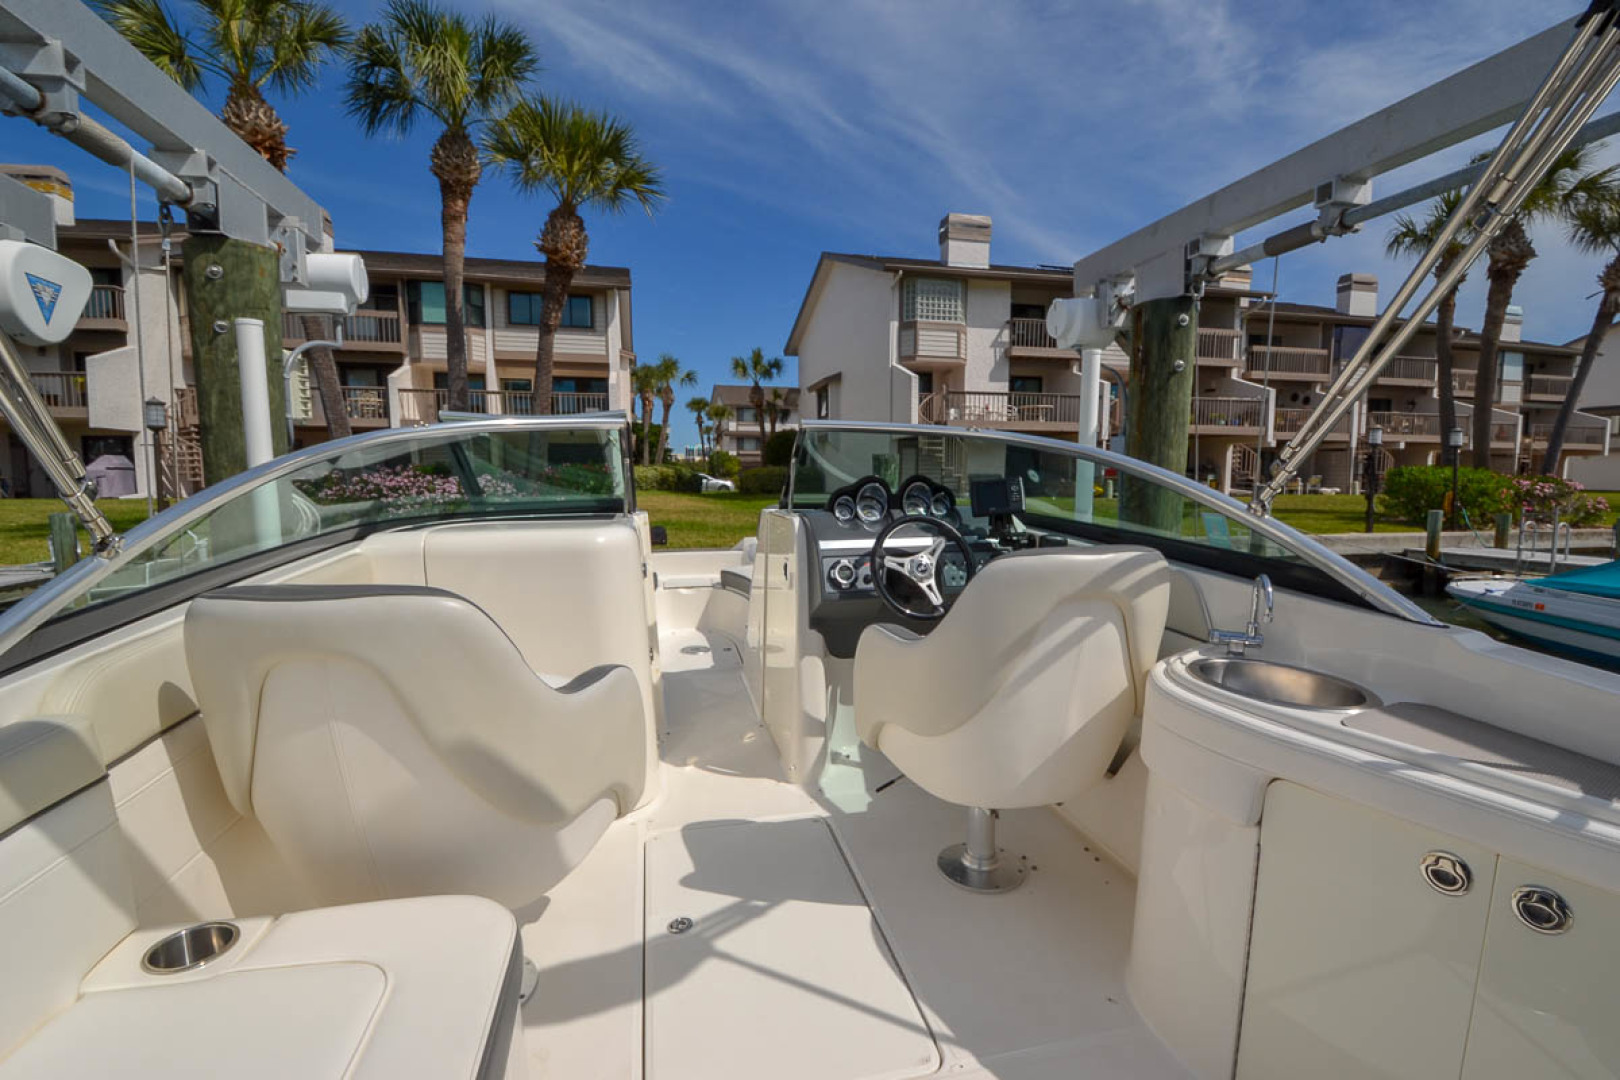 2012 Sea Ray 260 SunDeck-8.jpg